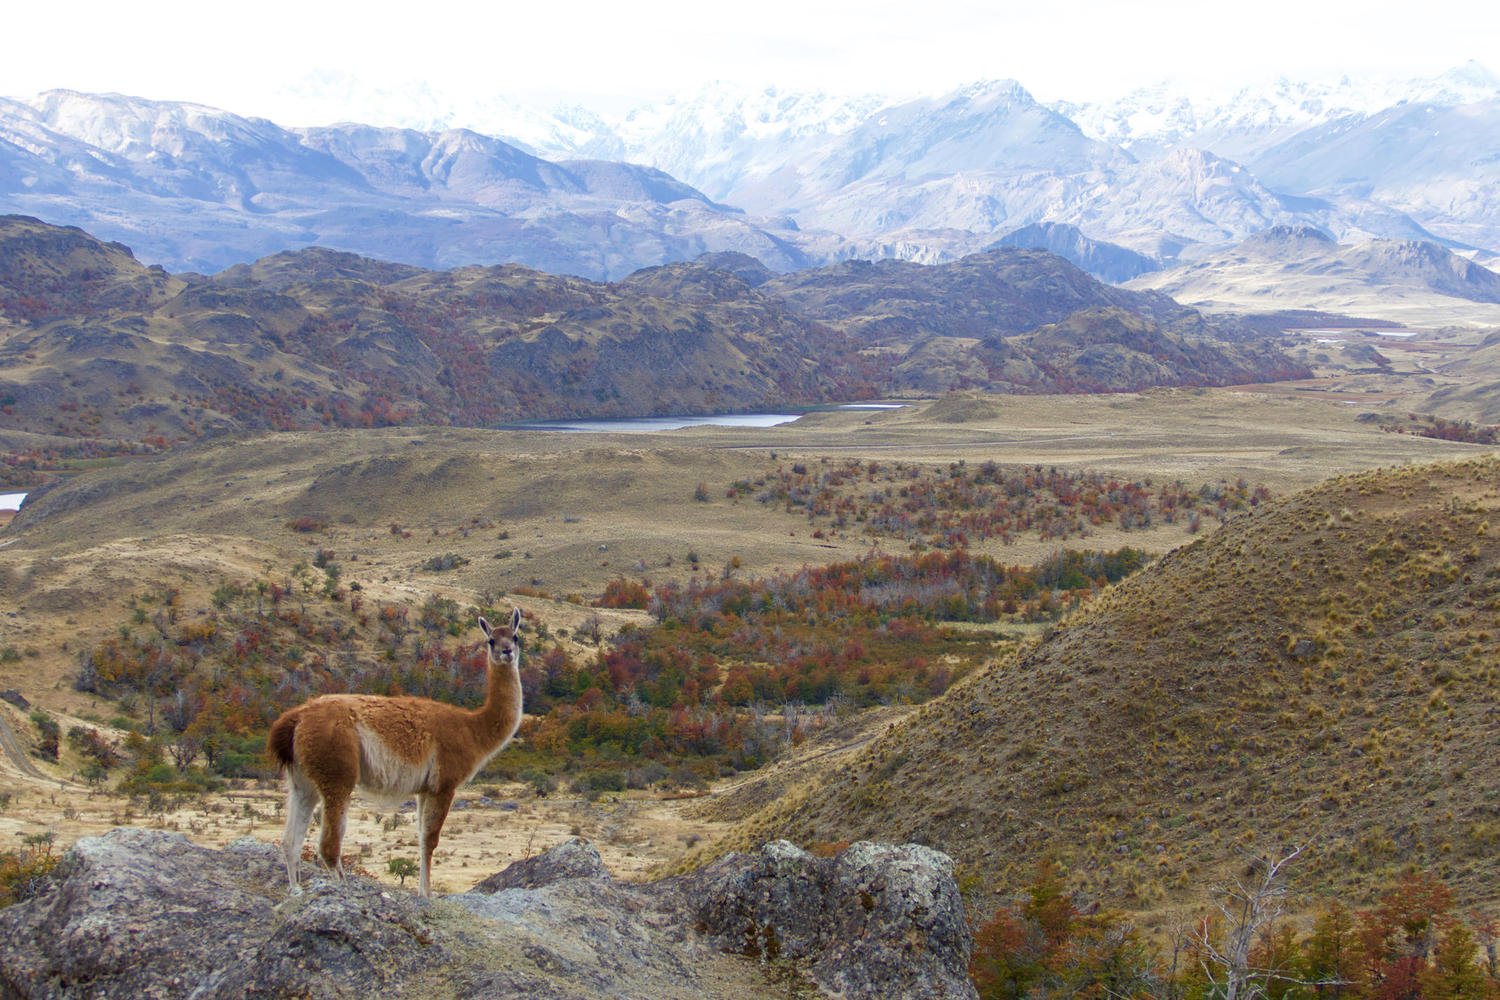 A curious guanaco in the Chacabuco Valley